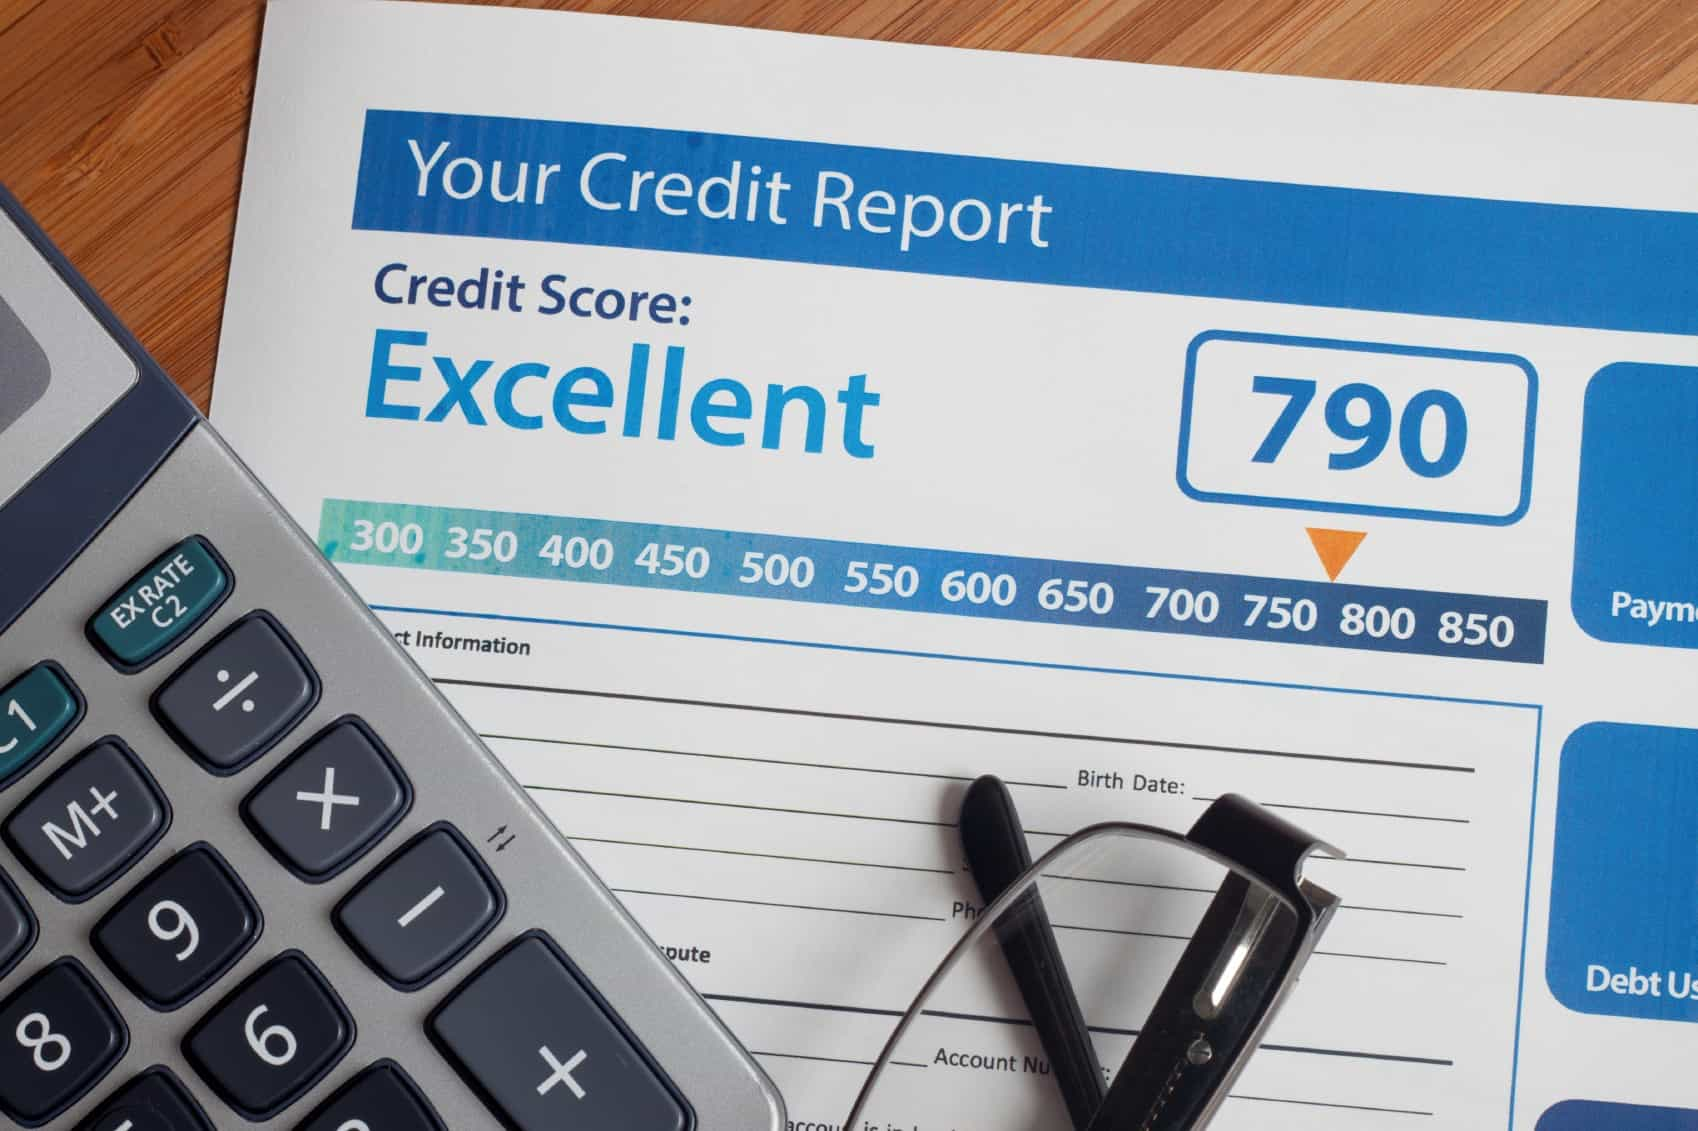 Part 2 – Credit Scores 101: What Determines Your Score and How to Keep It High